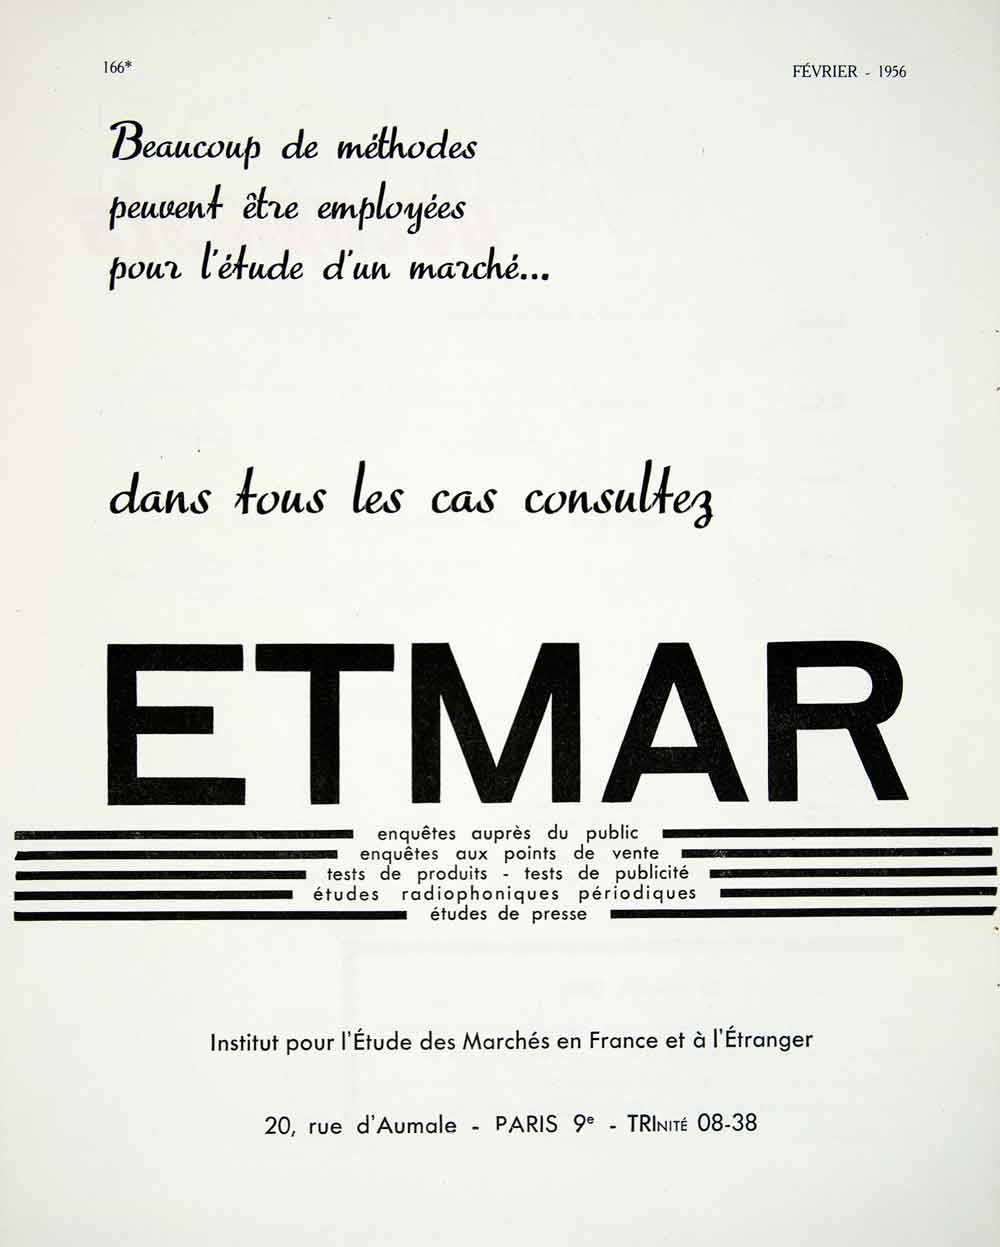 1956 Ad Etmar Institute 20 Rue Aumale French Marketing Studies VEN6